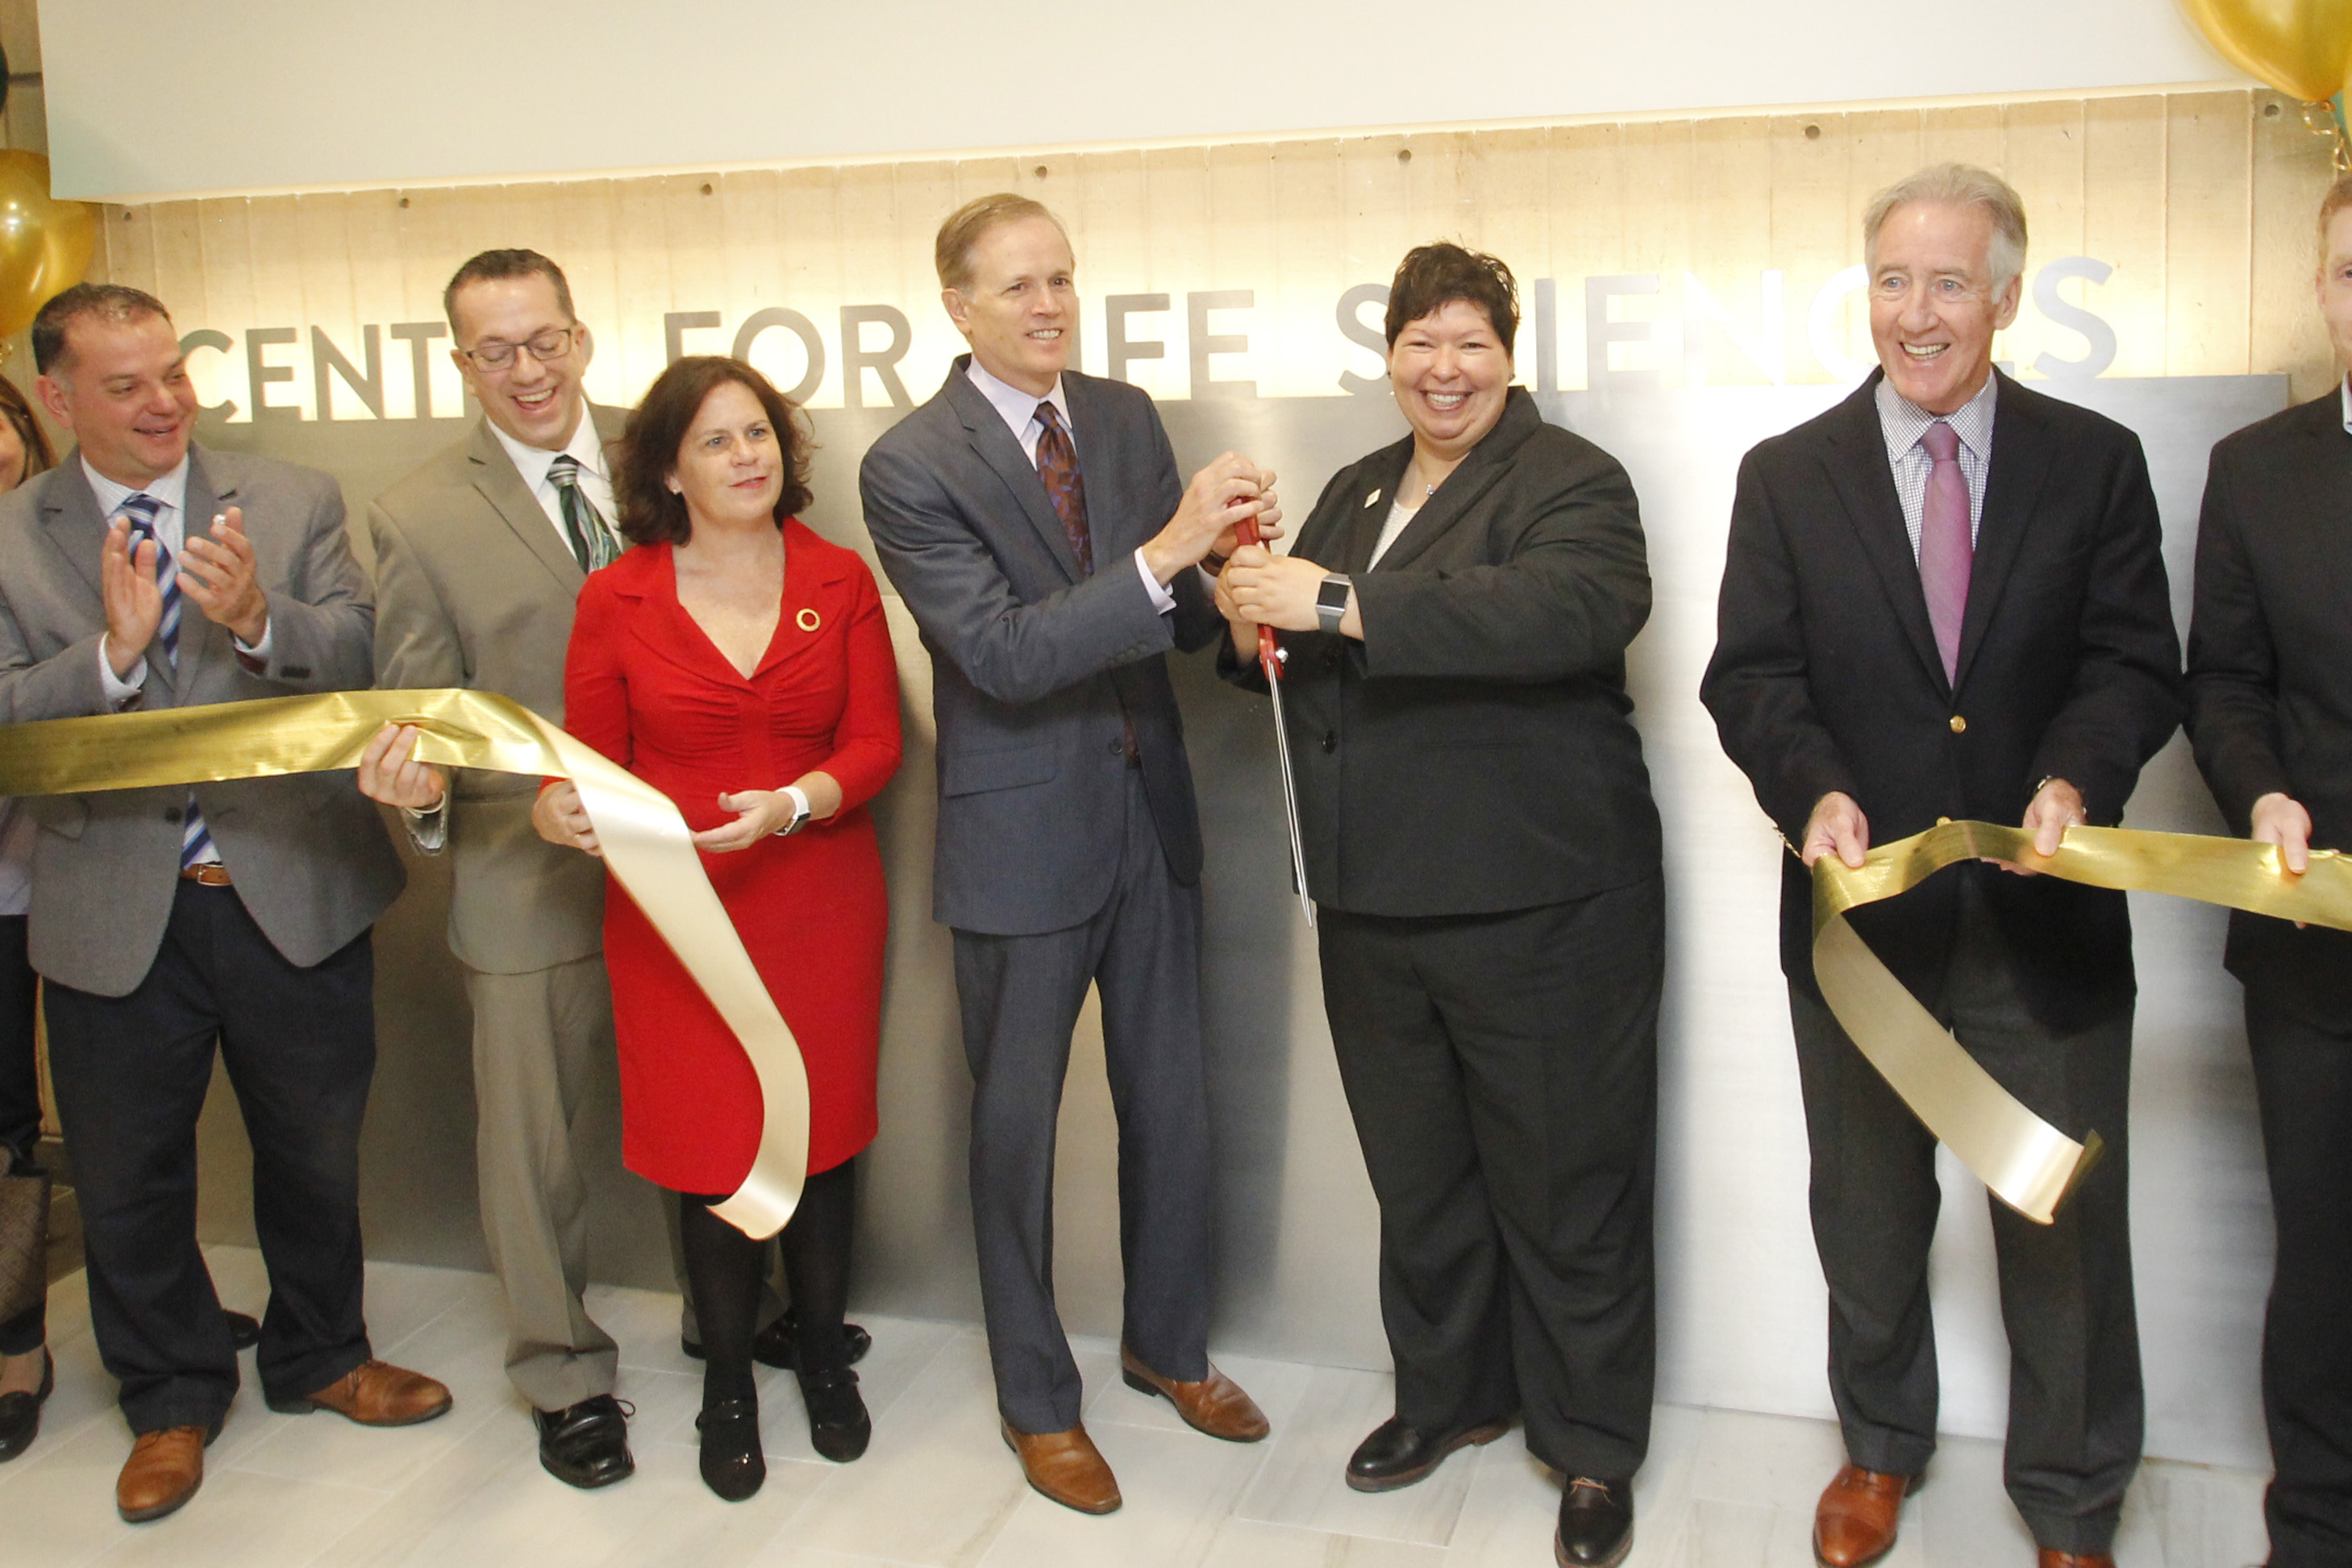 A photo of HCC president christina royal cutting the ribbon for HCC's new Center for Life Sciences